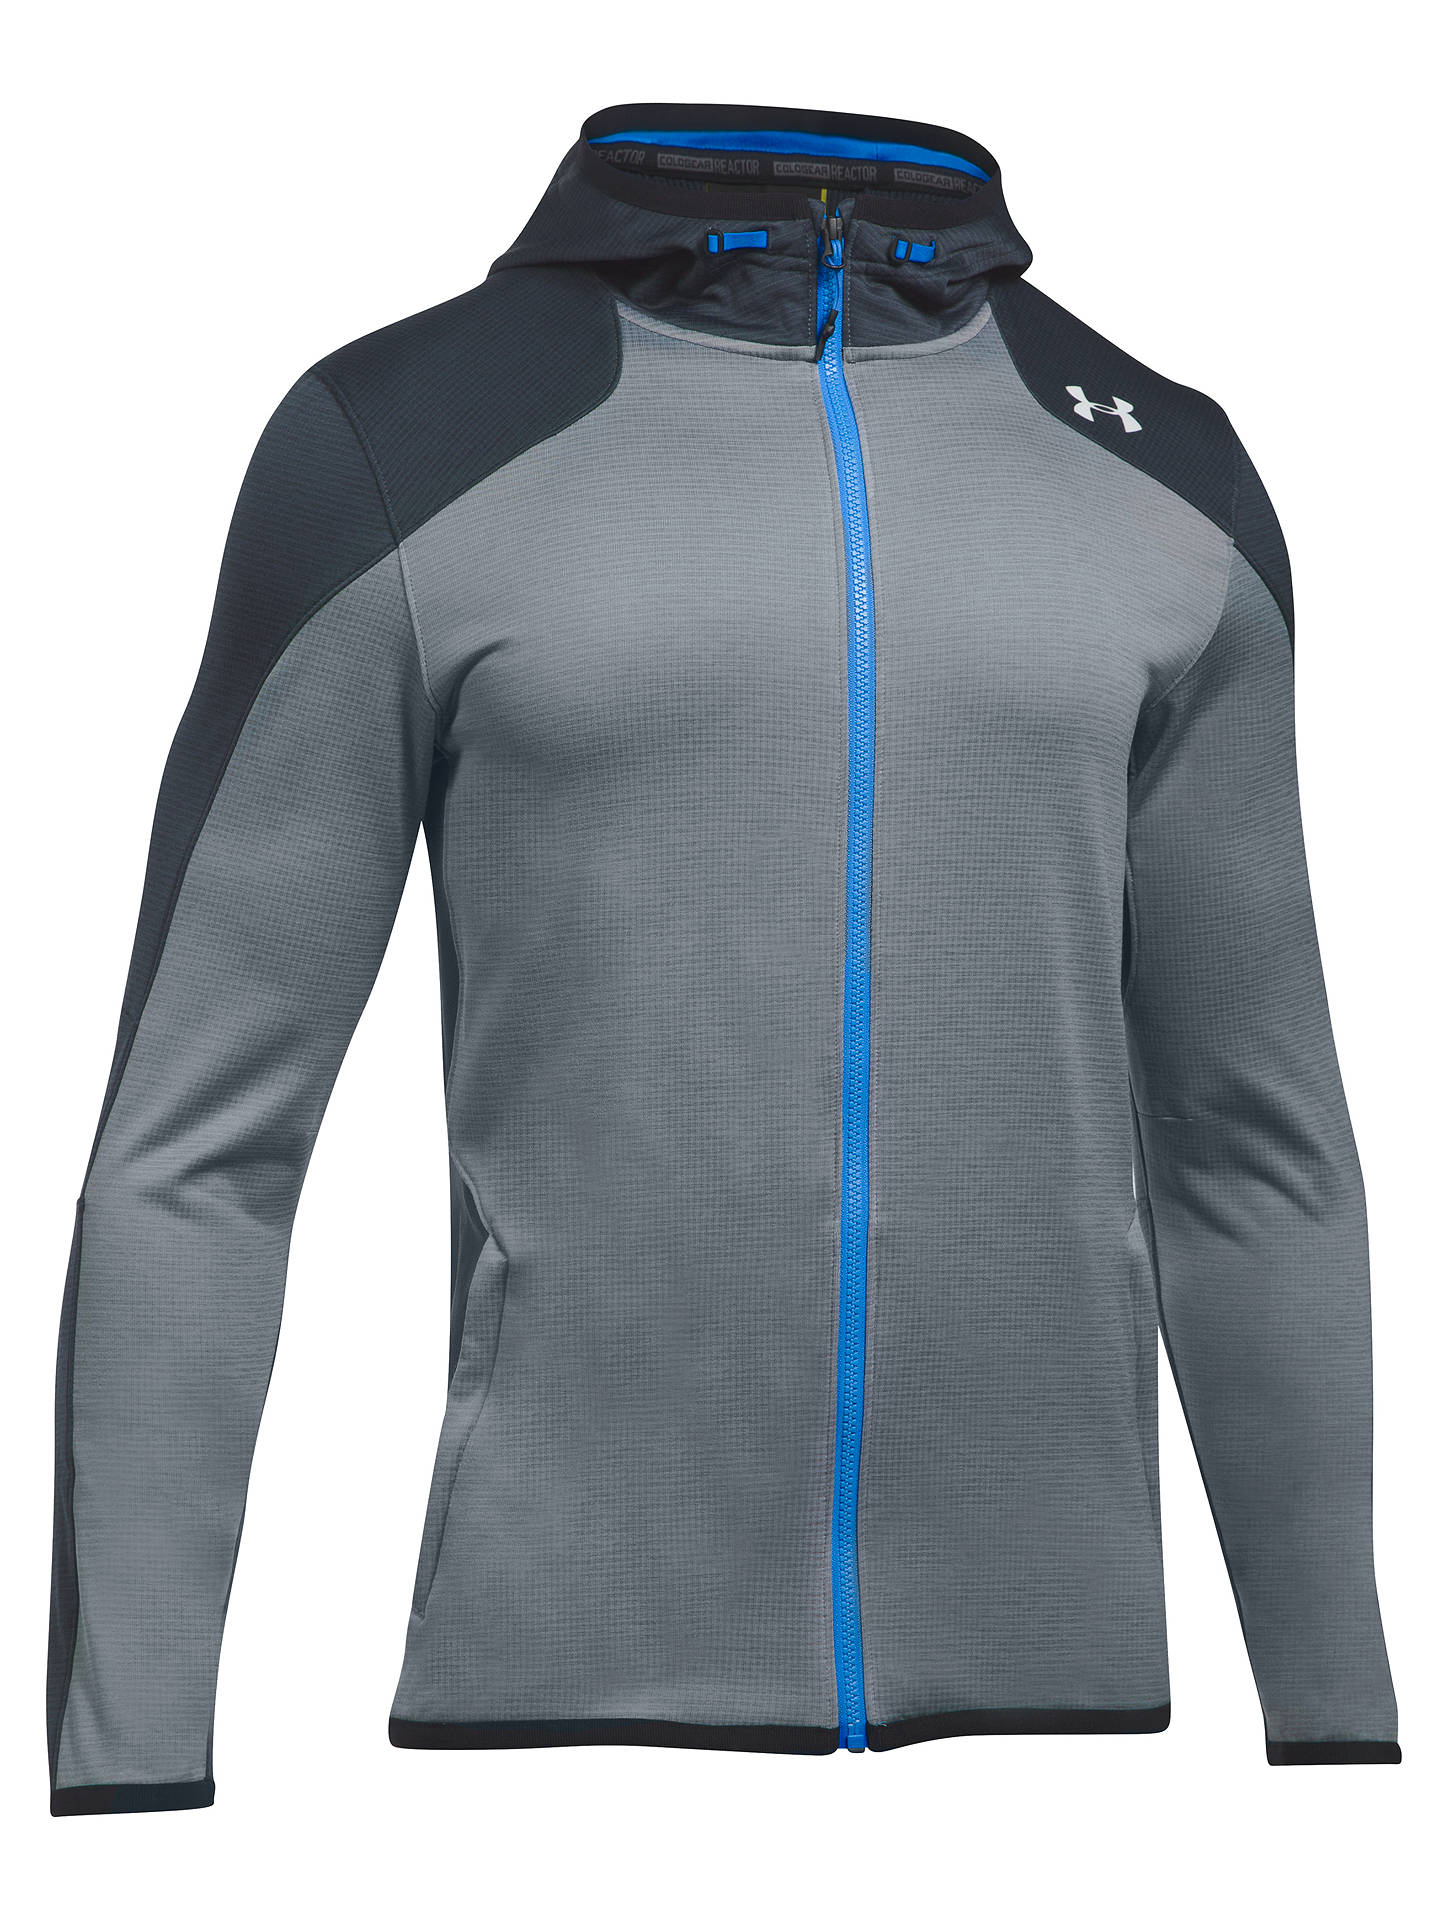 154d775bfe9 Buy Under Armour ColdGear Reactor Full-Zip Hooded Top